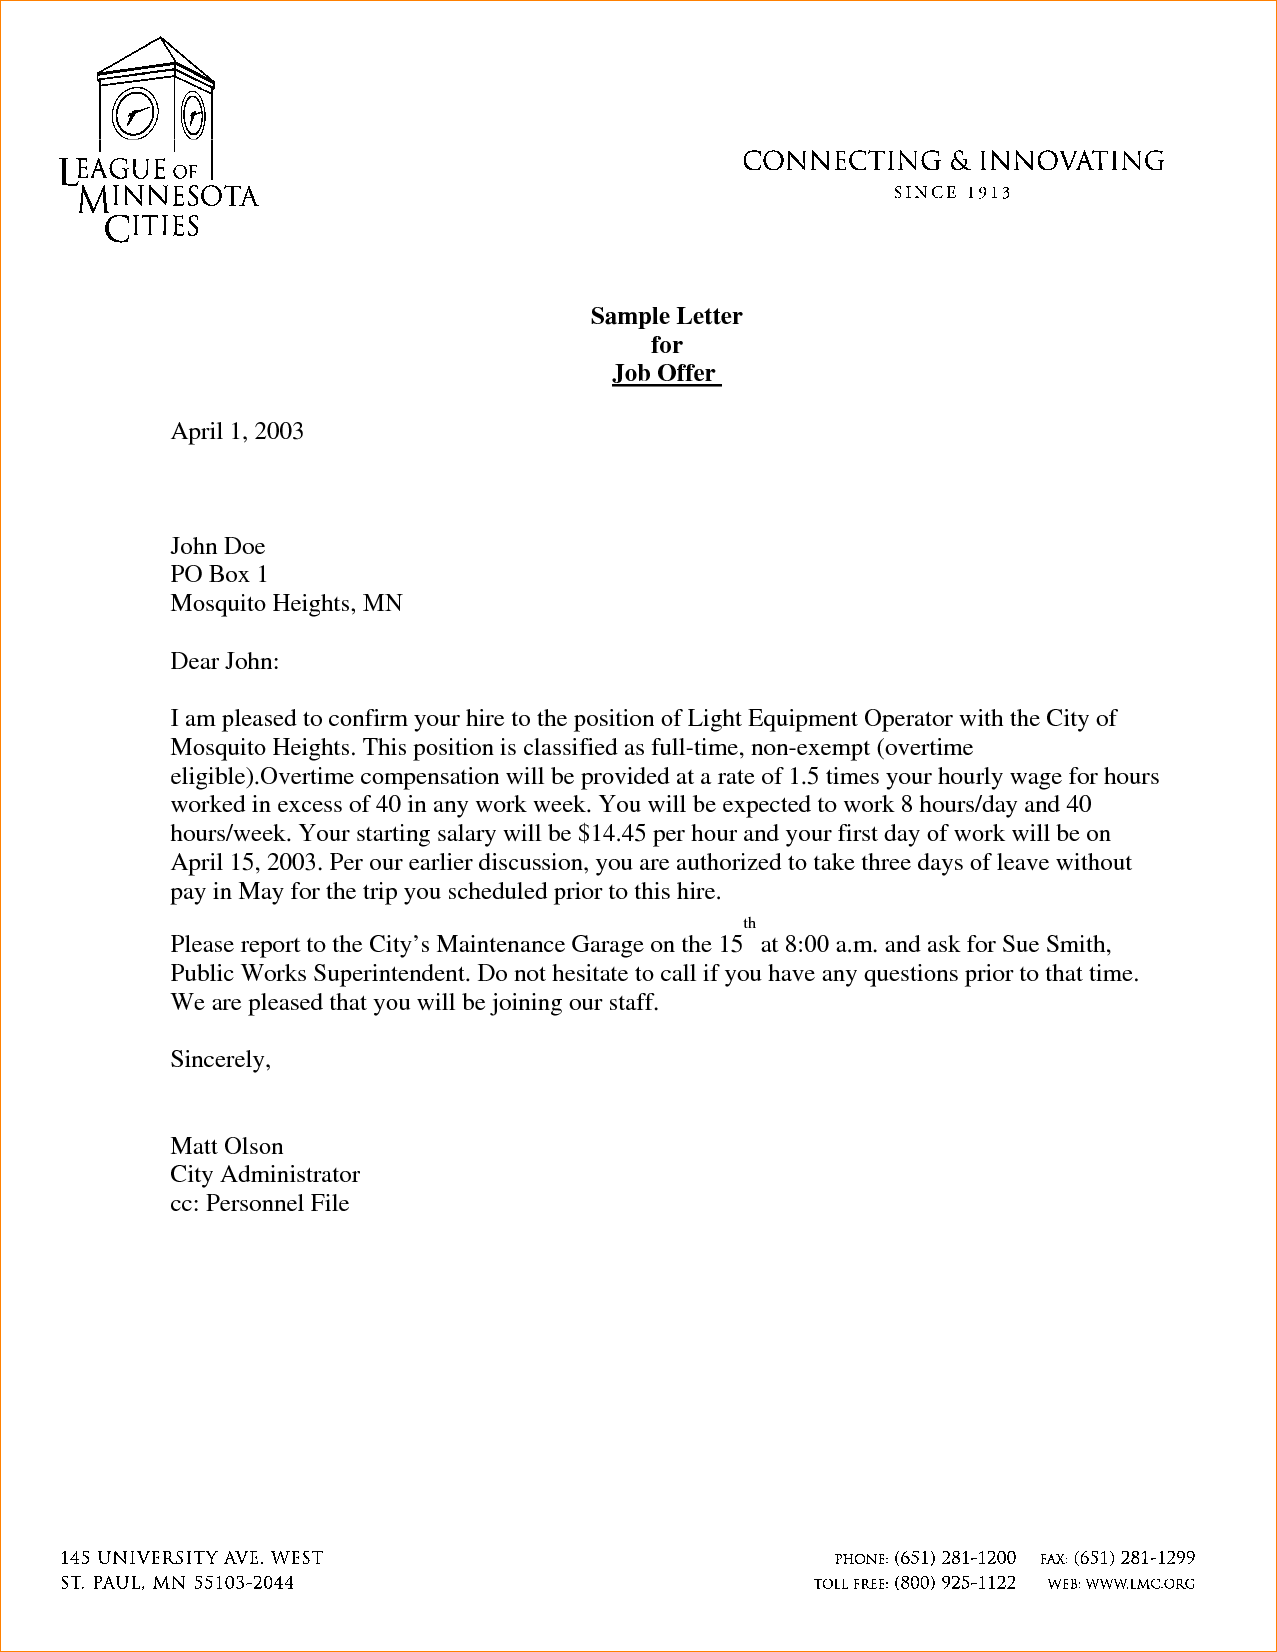 Job Offer Letter Letter Sample Template Pdf